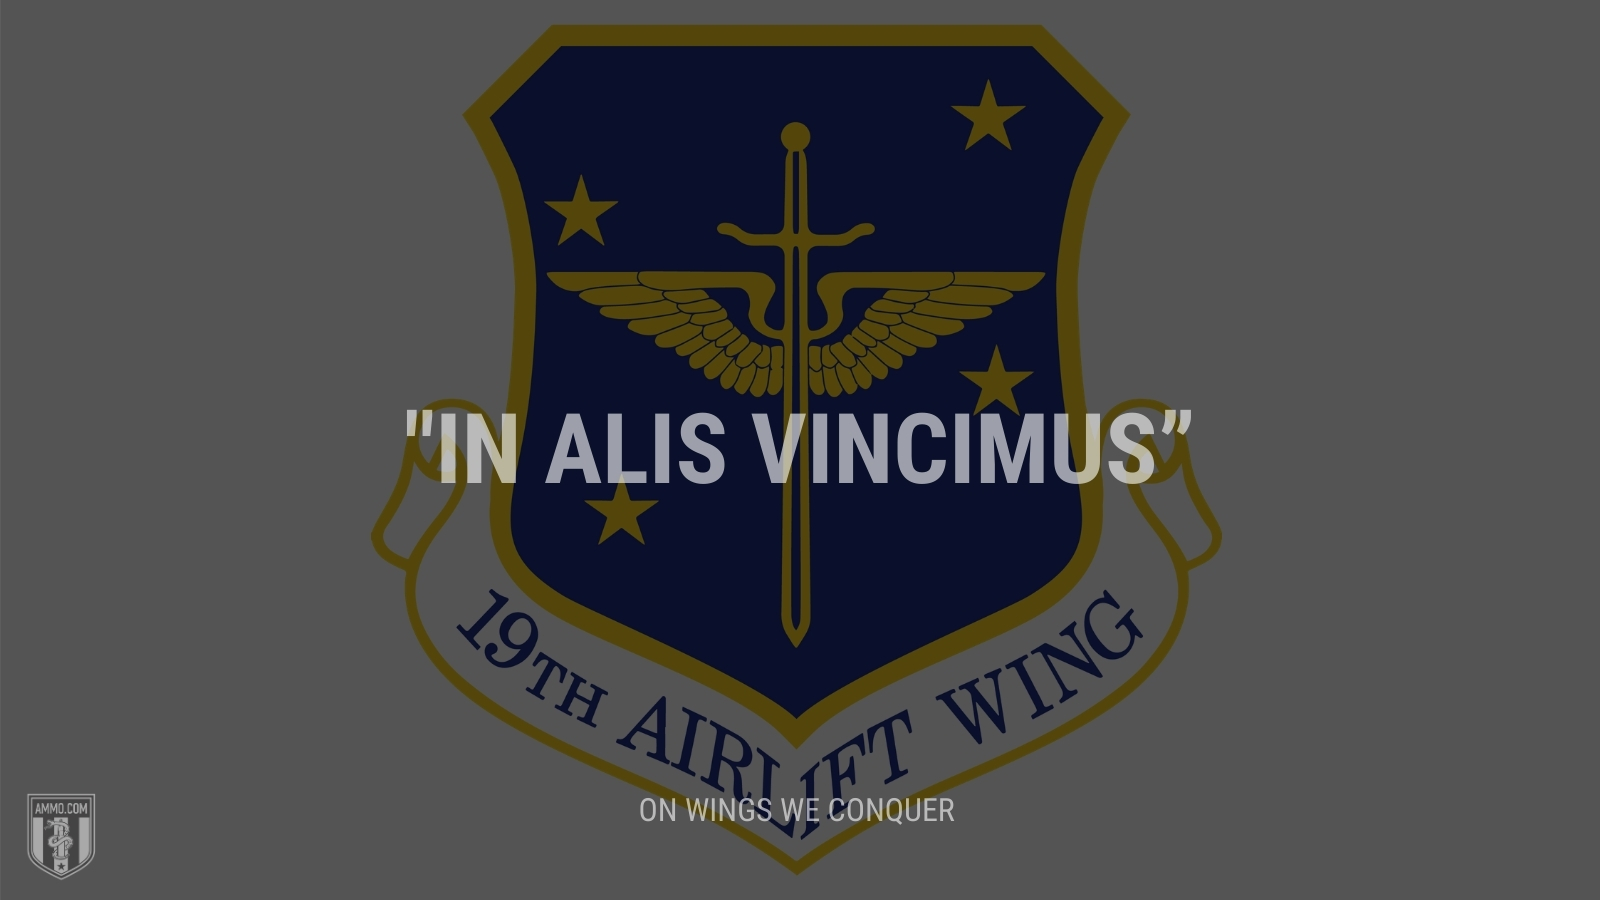 """""""In alis vincimus"""" - On wings we conquer"""